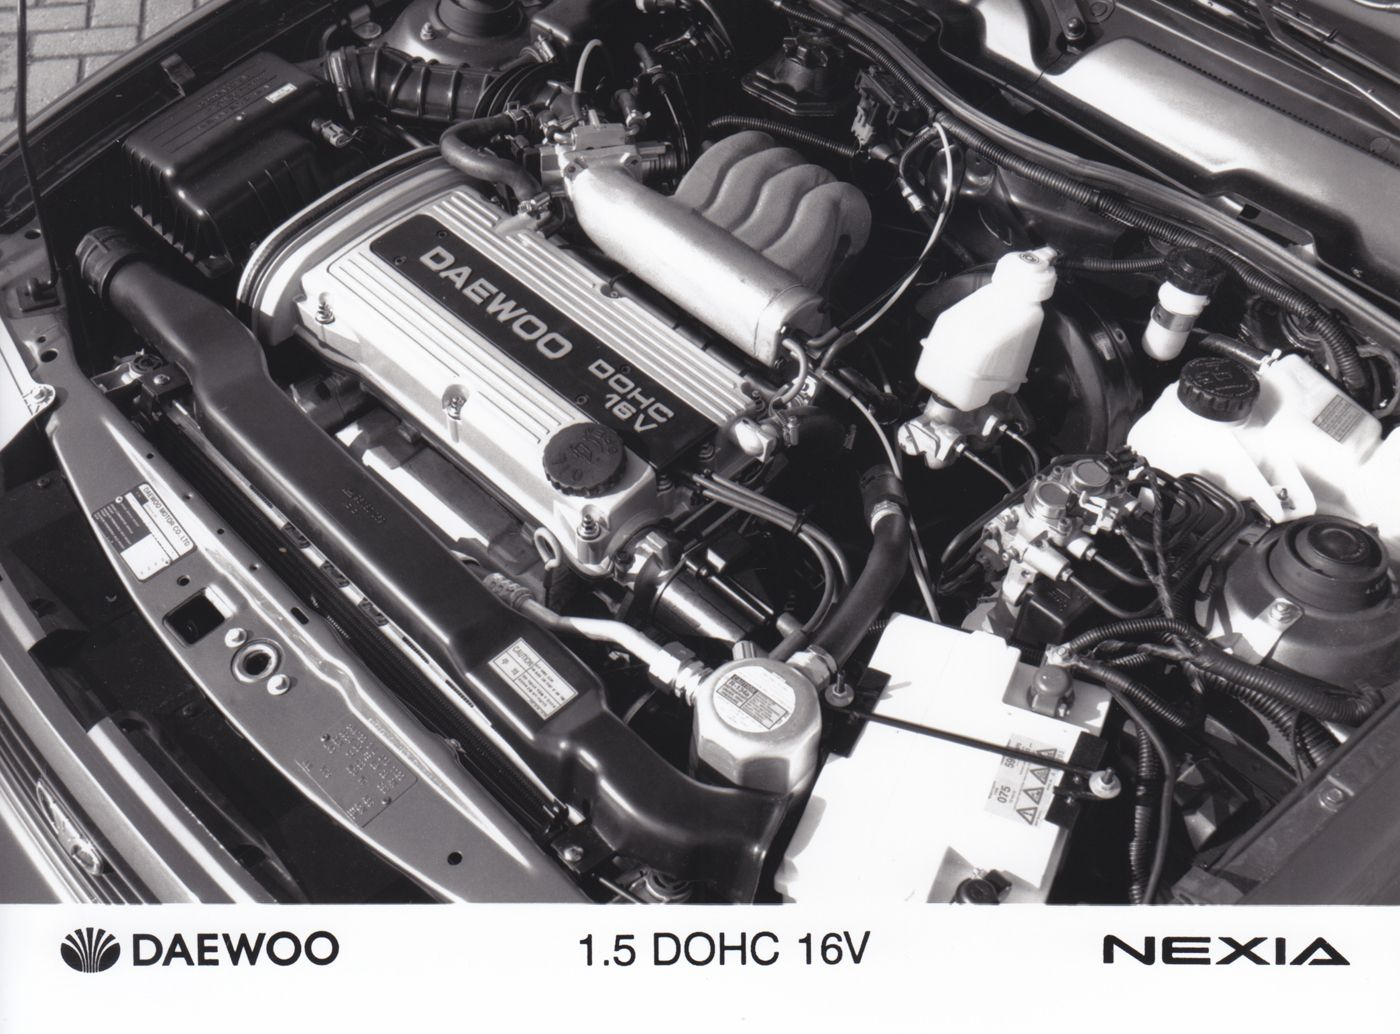 Daewoo Nexia editorial stock image. Image of inside - 129862859 | 1034x1400